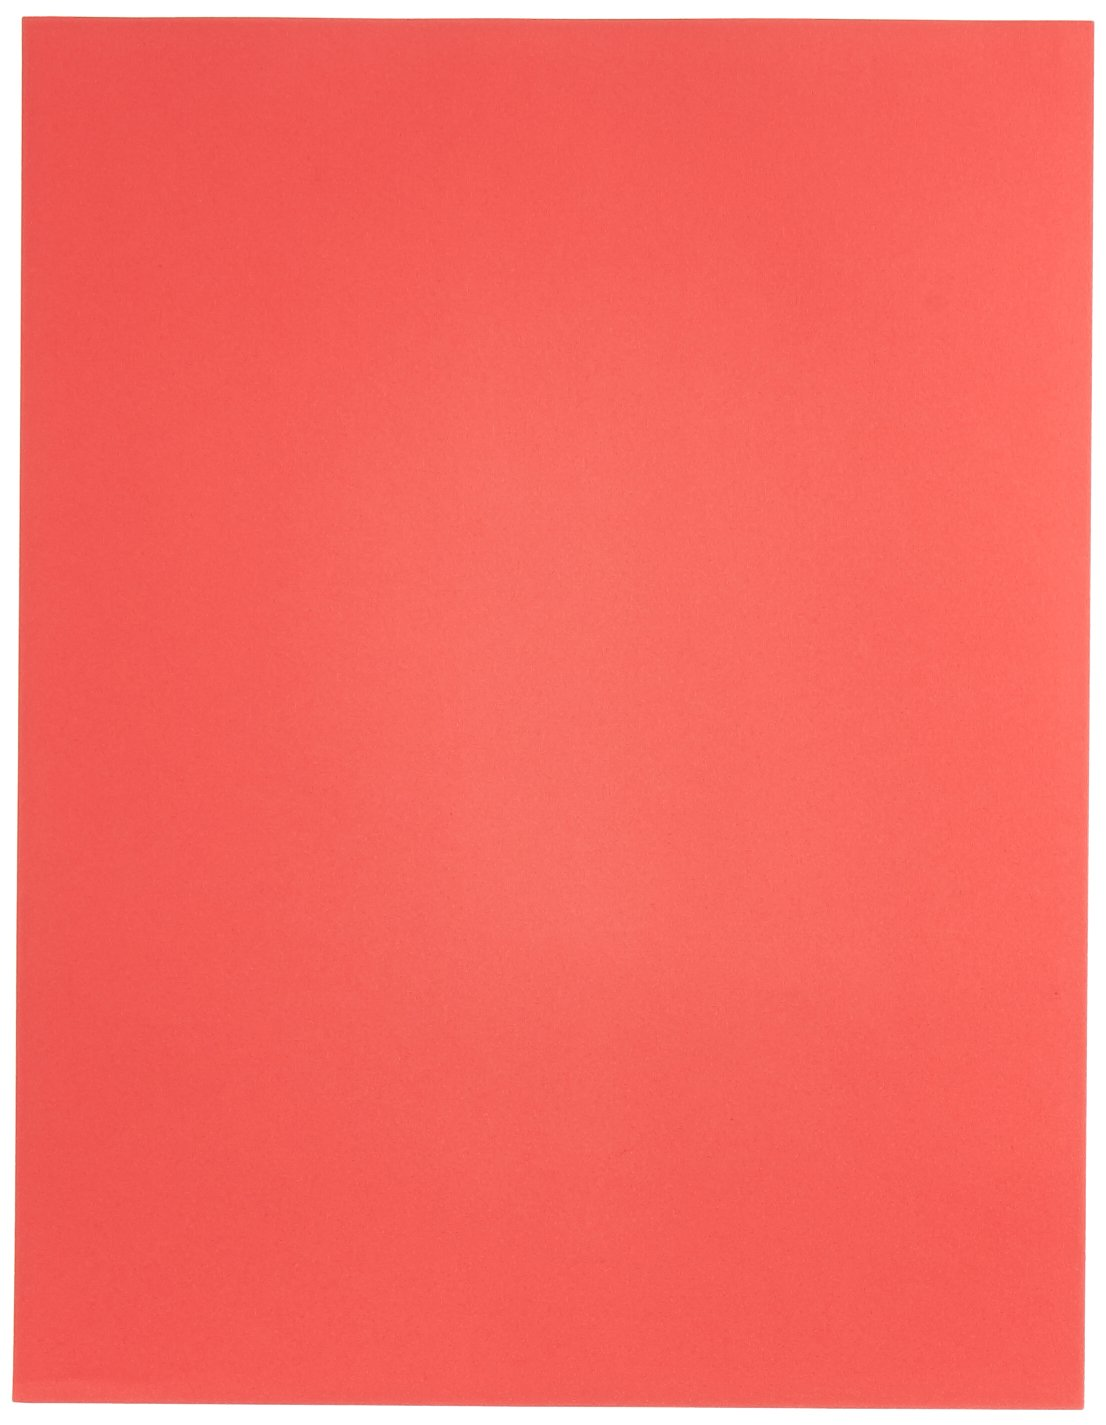 Exact Color Copy Paper, 8-1/2 x 11 Inches, 20 lb, Bright Red, Pack of 500 - 87298 by Exact (Image #1)